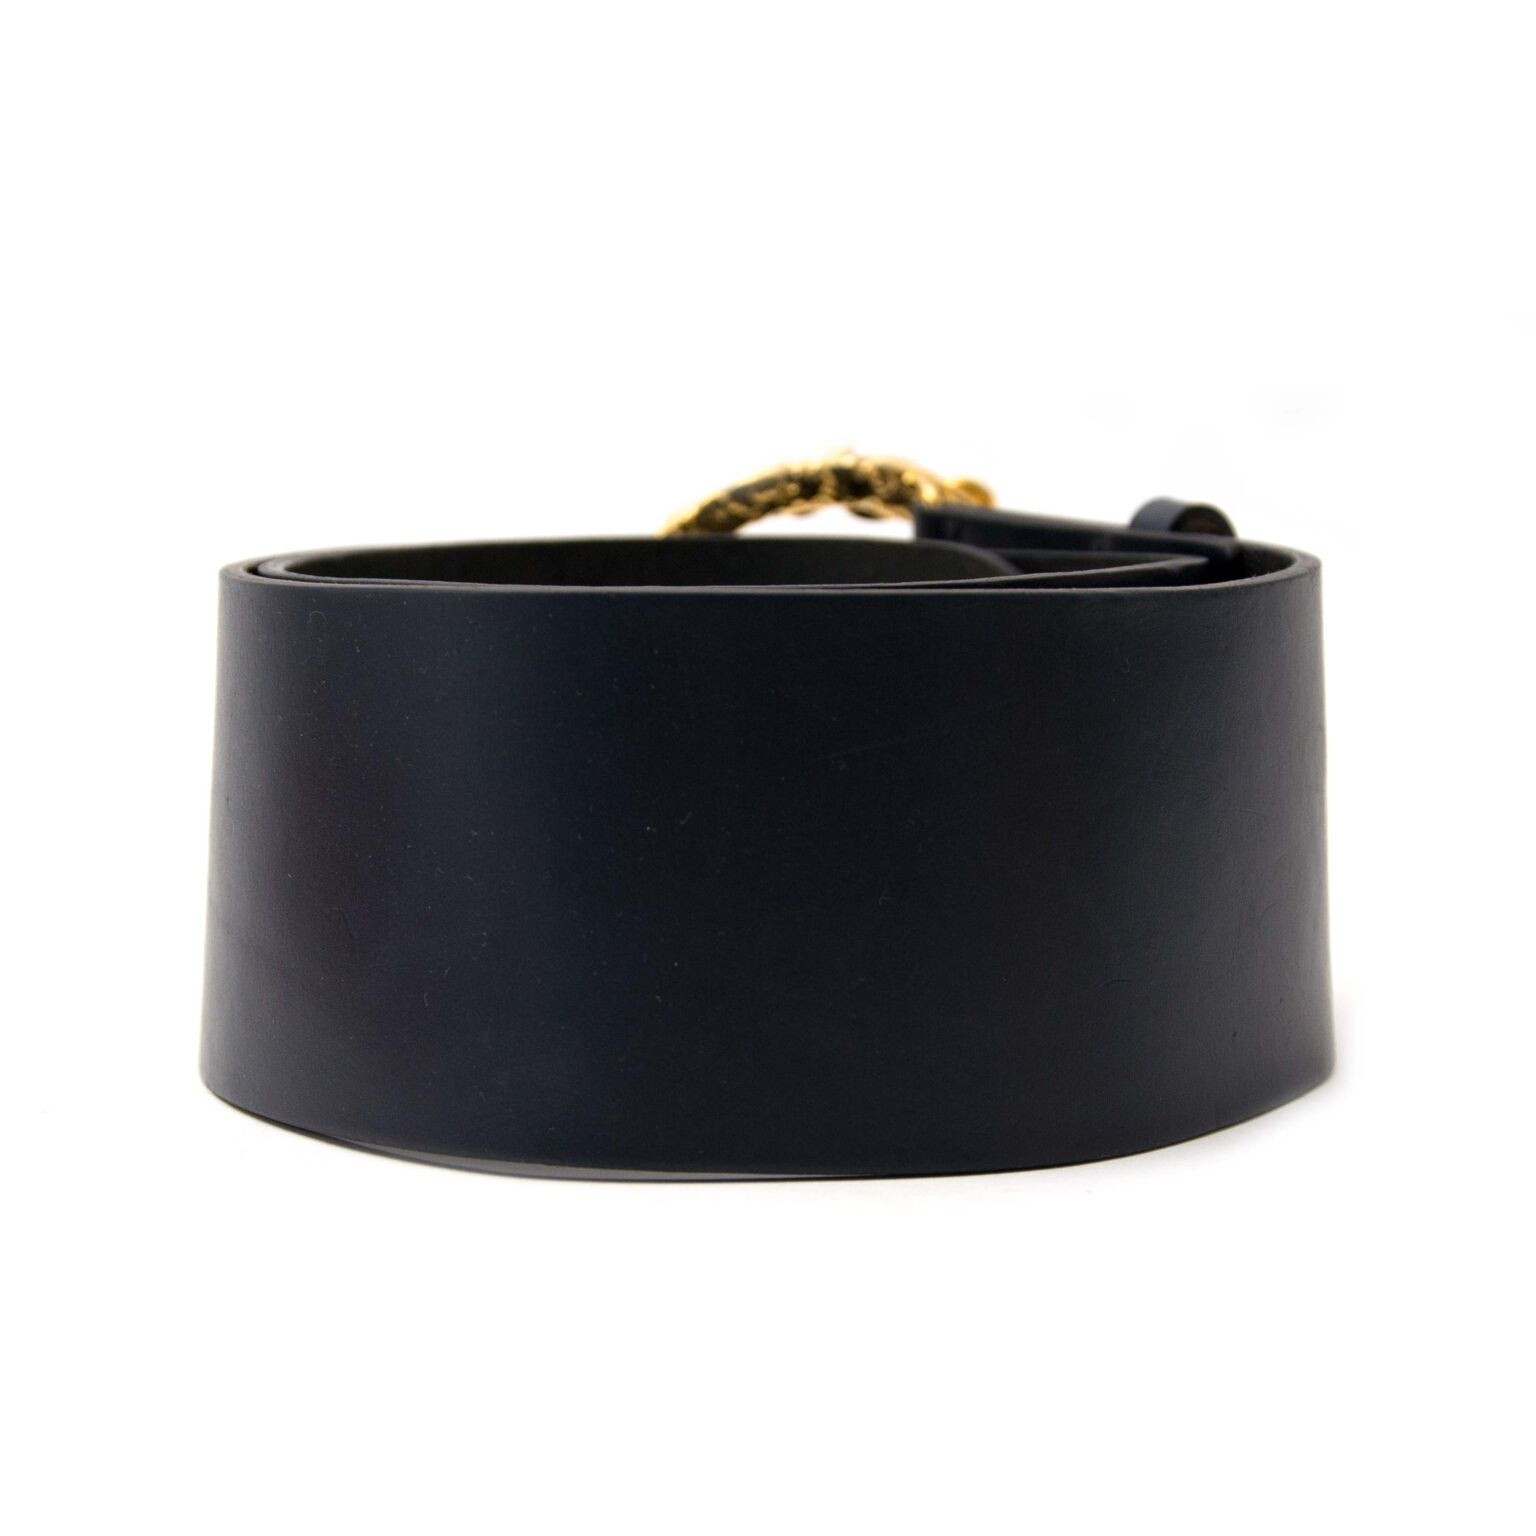 Buy now a beautiful belt on the webshop labellov.com